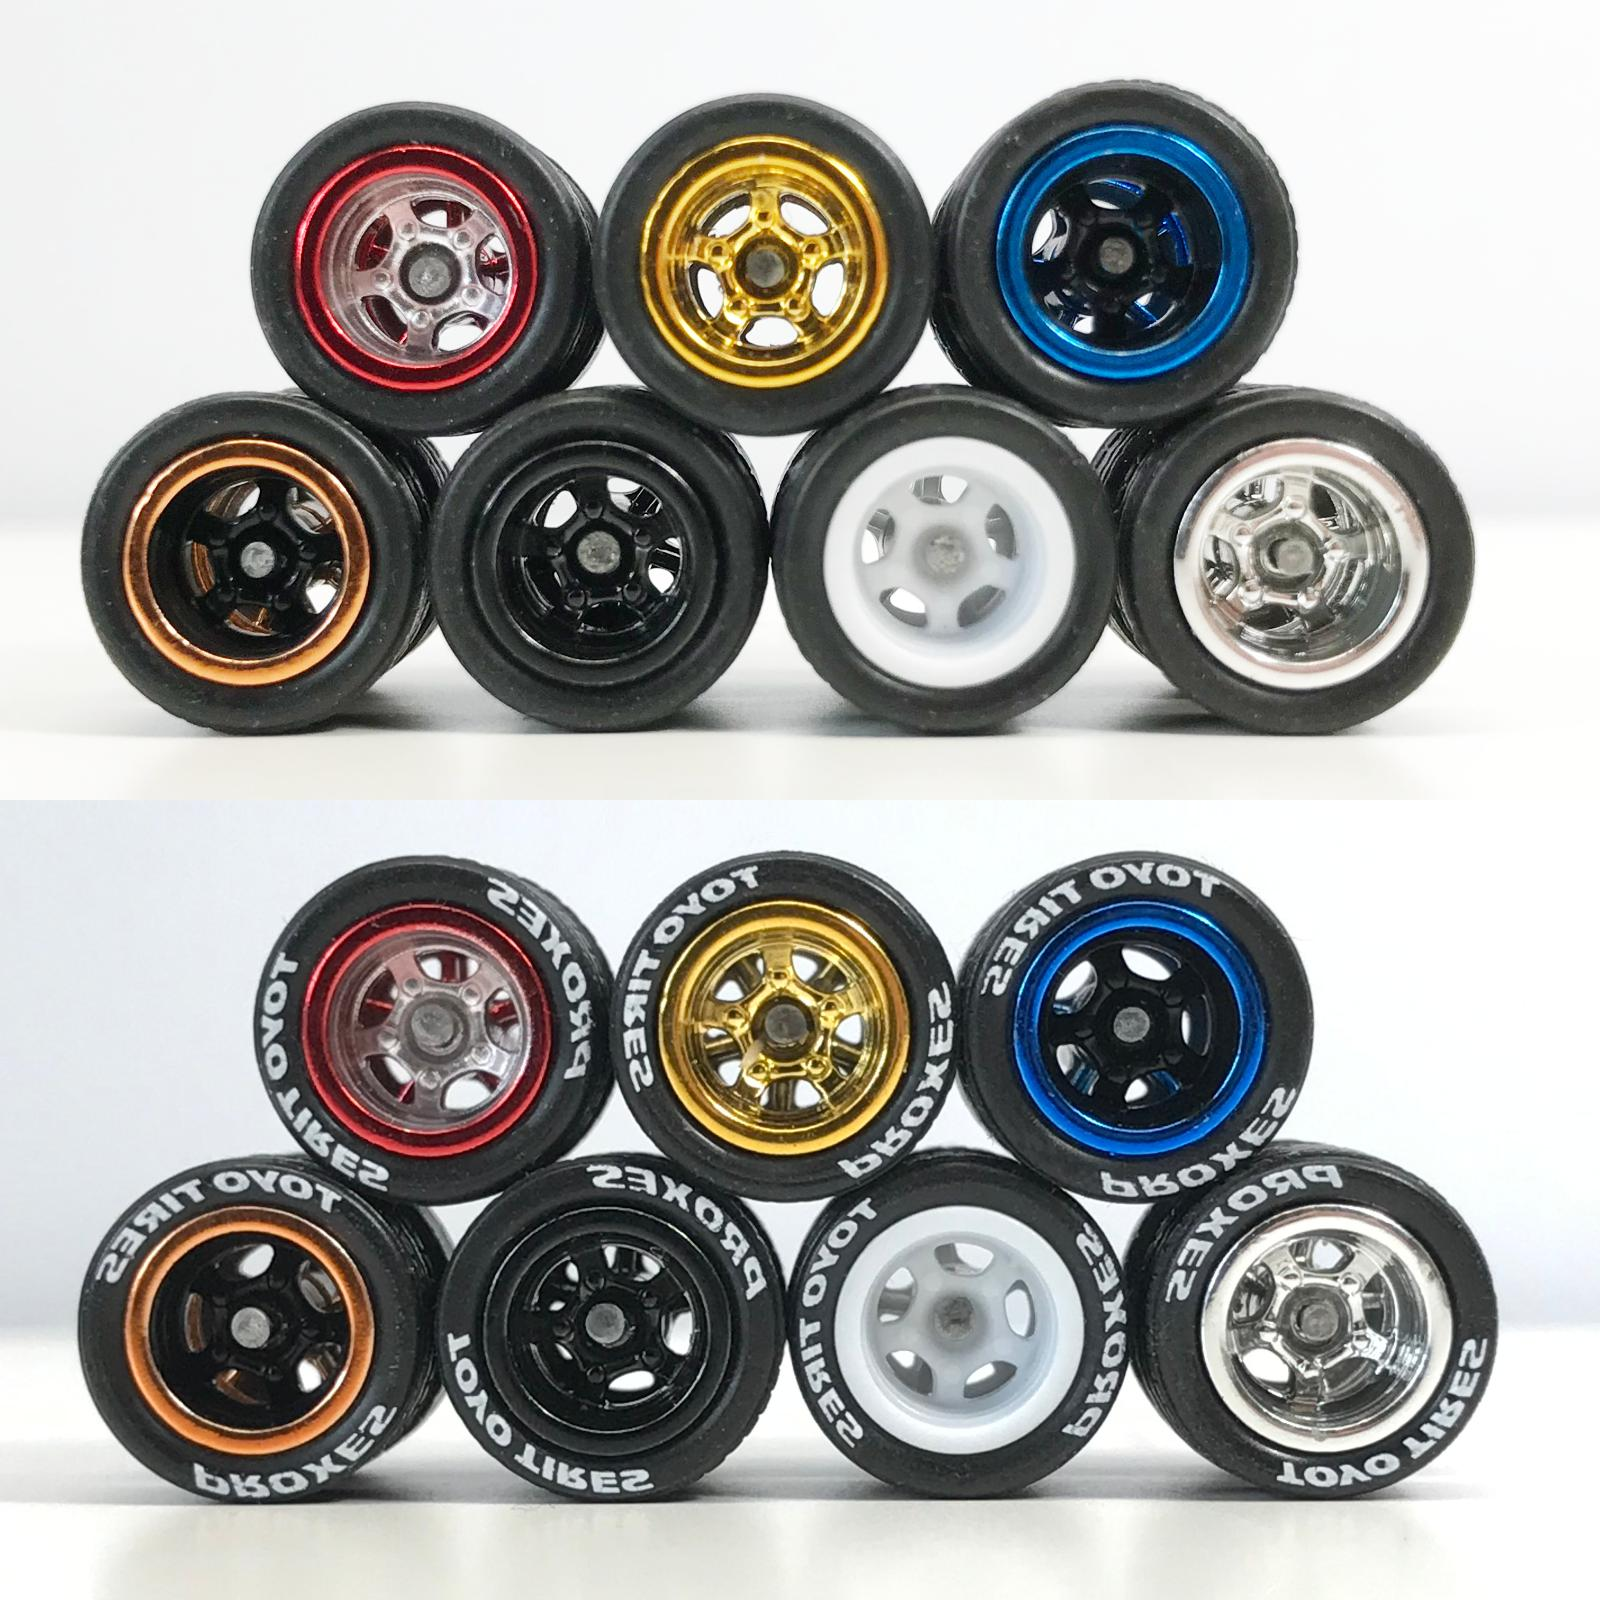 Hot Real Wheels and Tires for